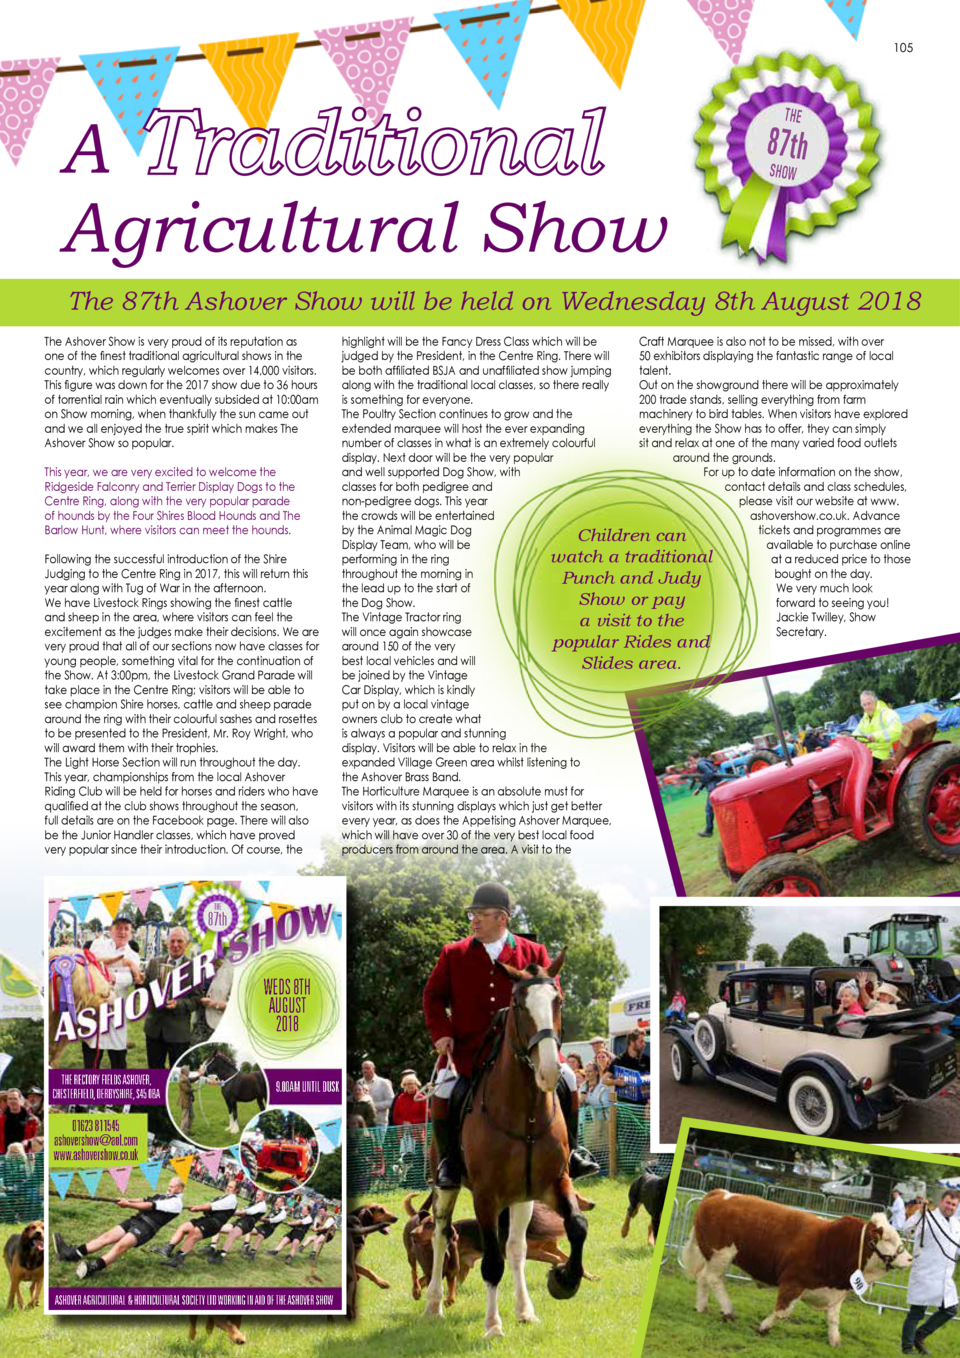 104  SCHOOL   S OUT FOR SUMMER  105  A Traditional Agricultural Show  THE  87th SHOW  The 87th Ashover Show will be held o...